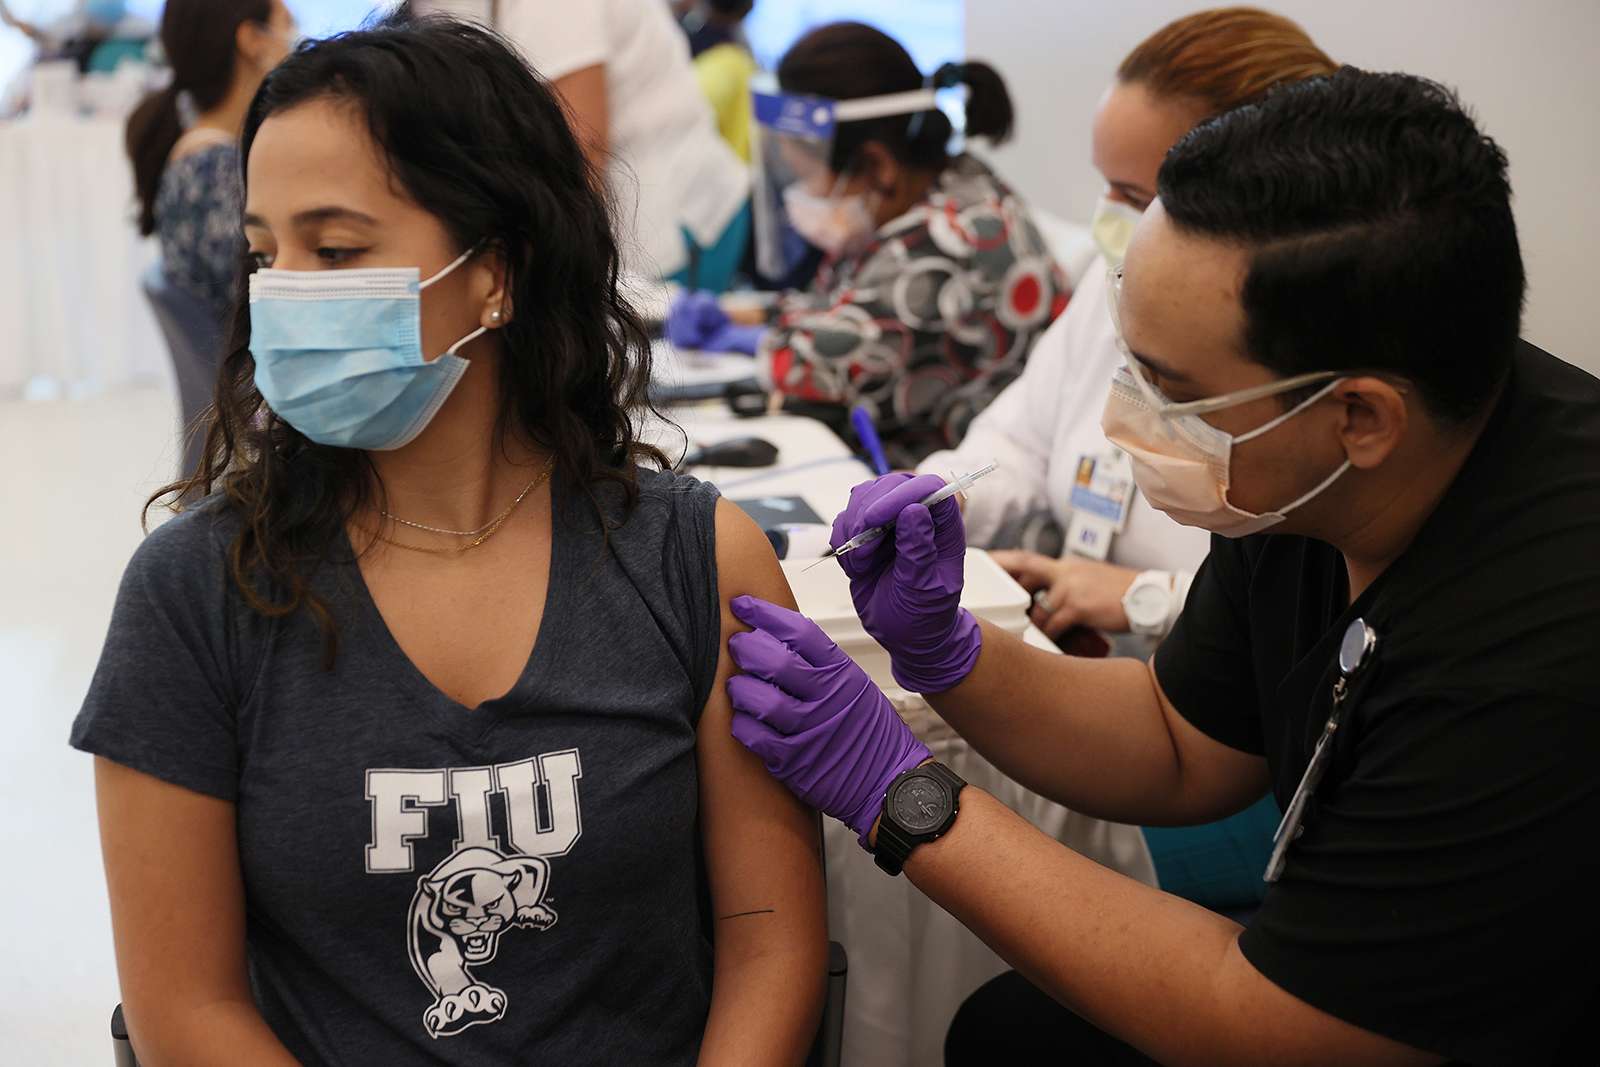 Camila Gutierrez, a junior at Florida International University, receives a Pfizer-BioNtech Covid-19 vaccine from Jason Rodriguez, a pharmacy student, at the Jackson Memorial Hospital on April 15, in Miami.